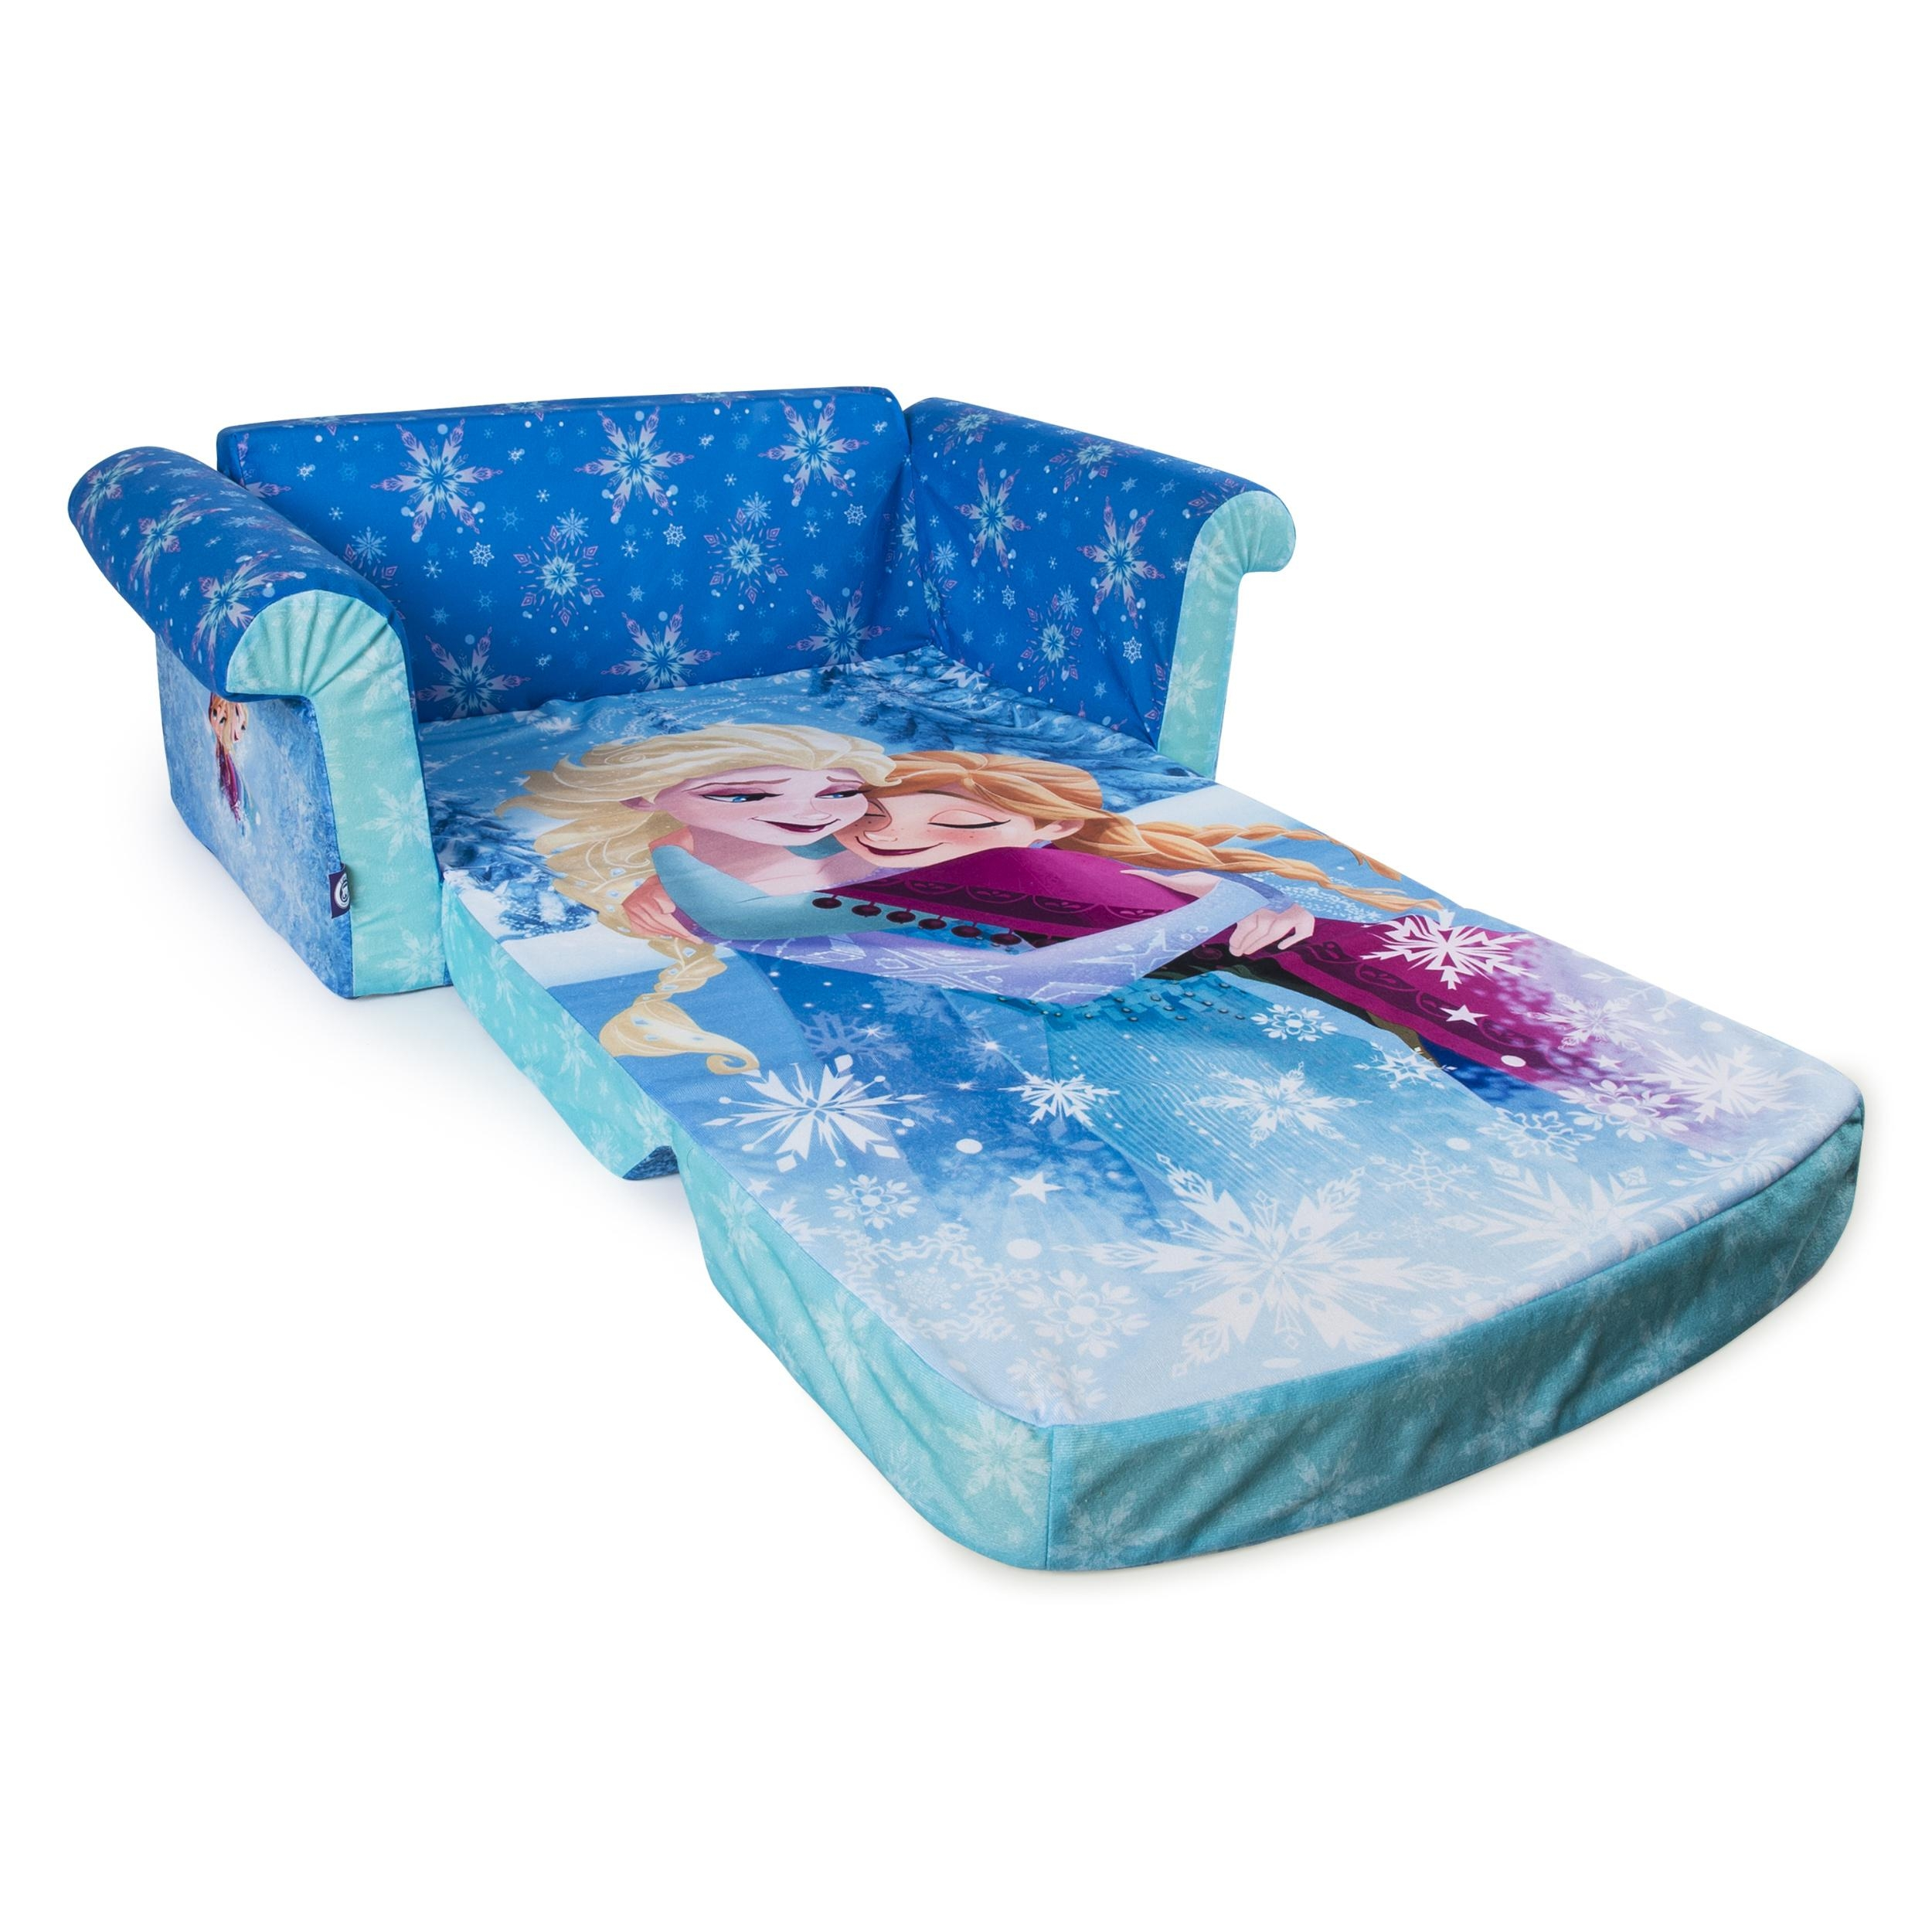 Marshmallow Furniture, Children's 2 In 1 Flip Open Foam Sofa With Disney Princess Couches (Image 12 of 20)